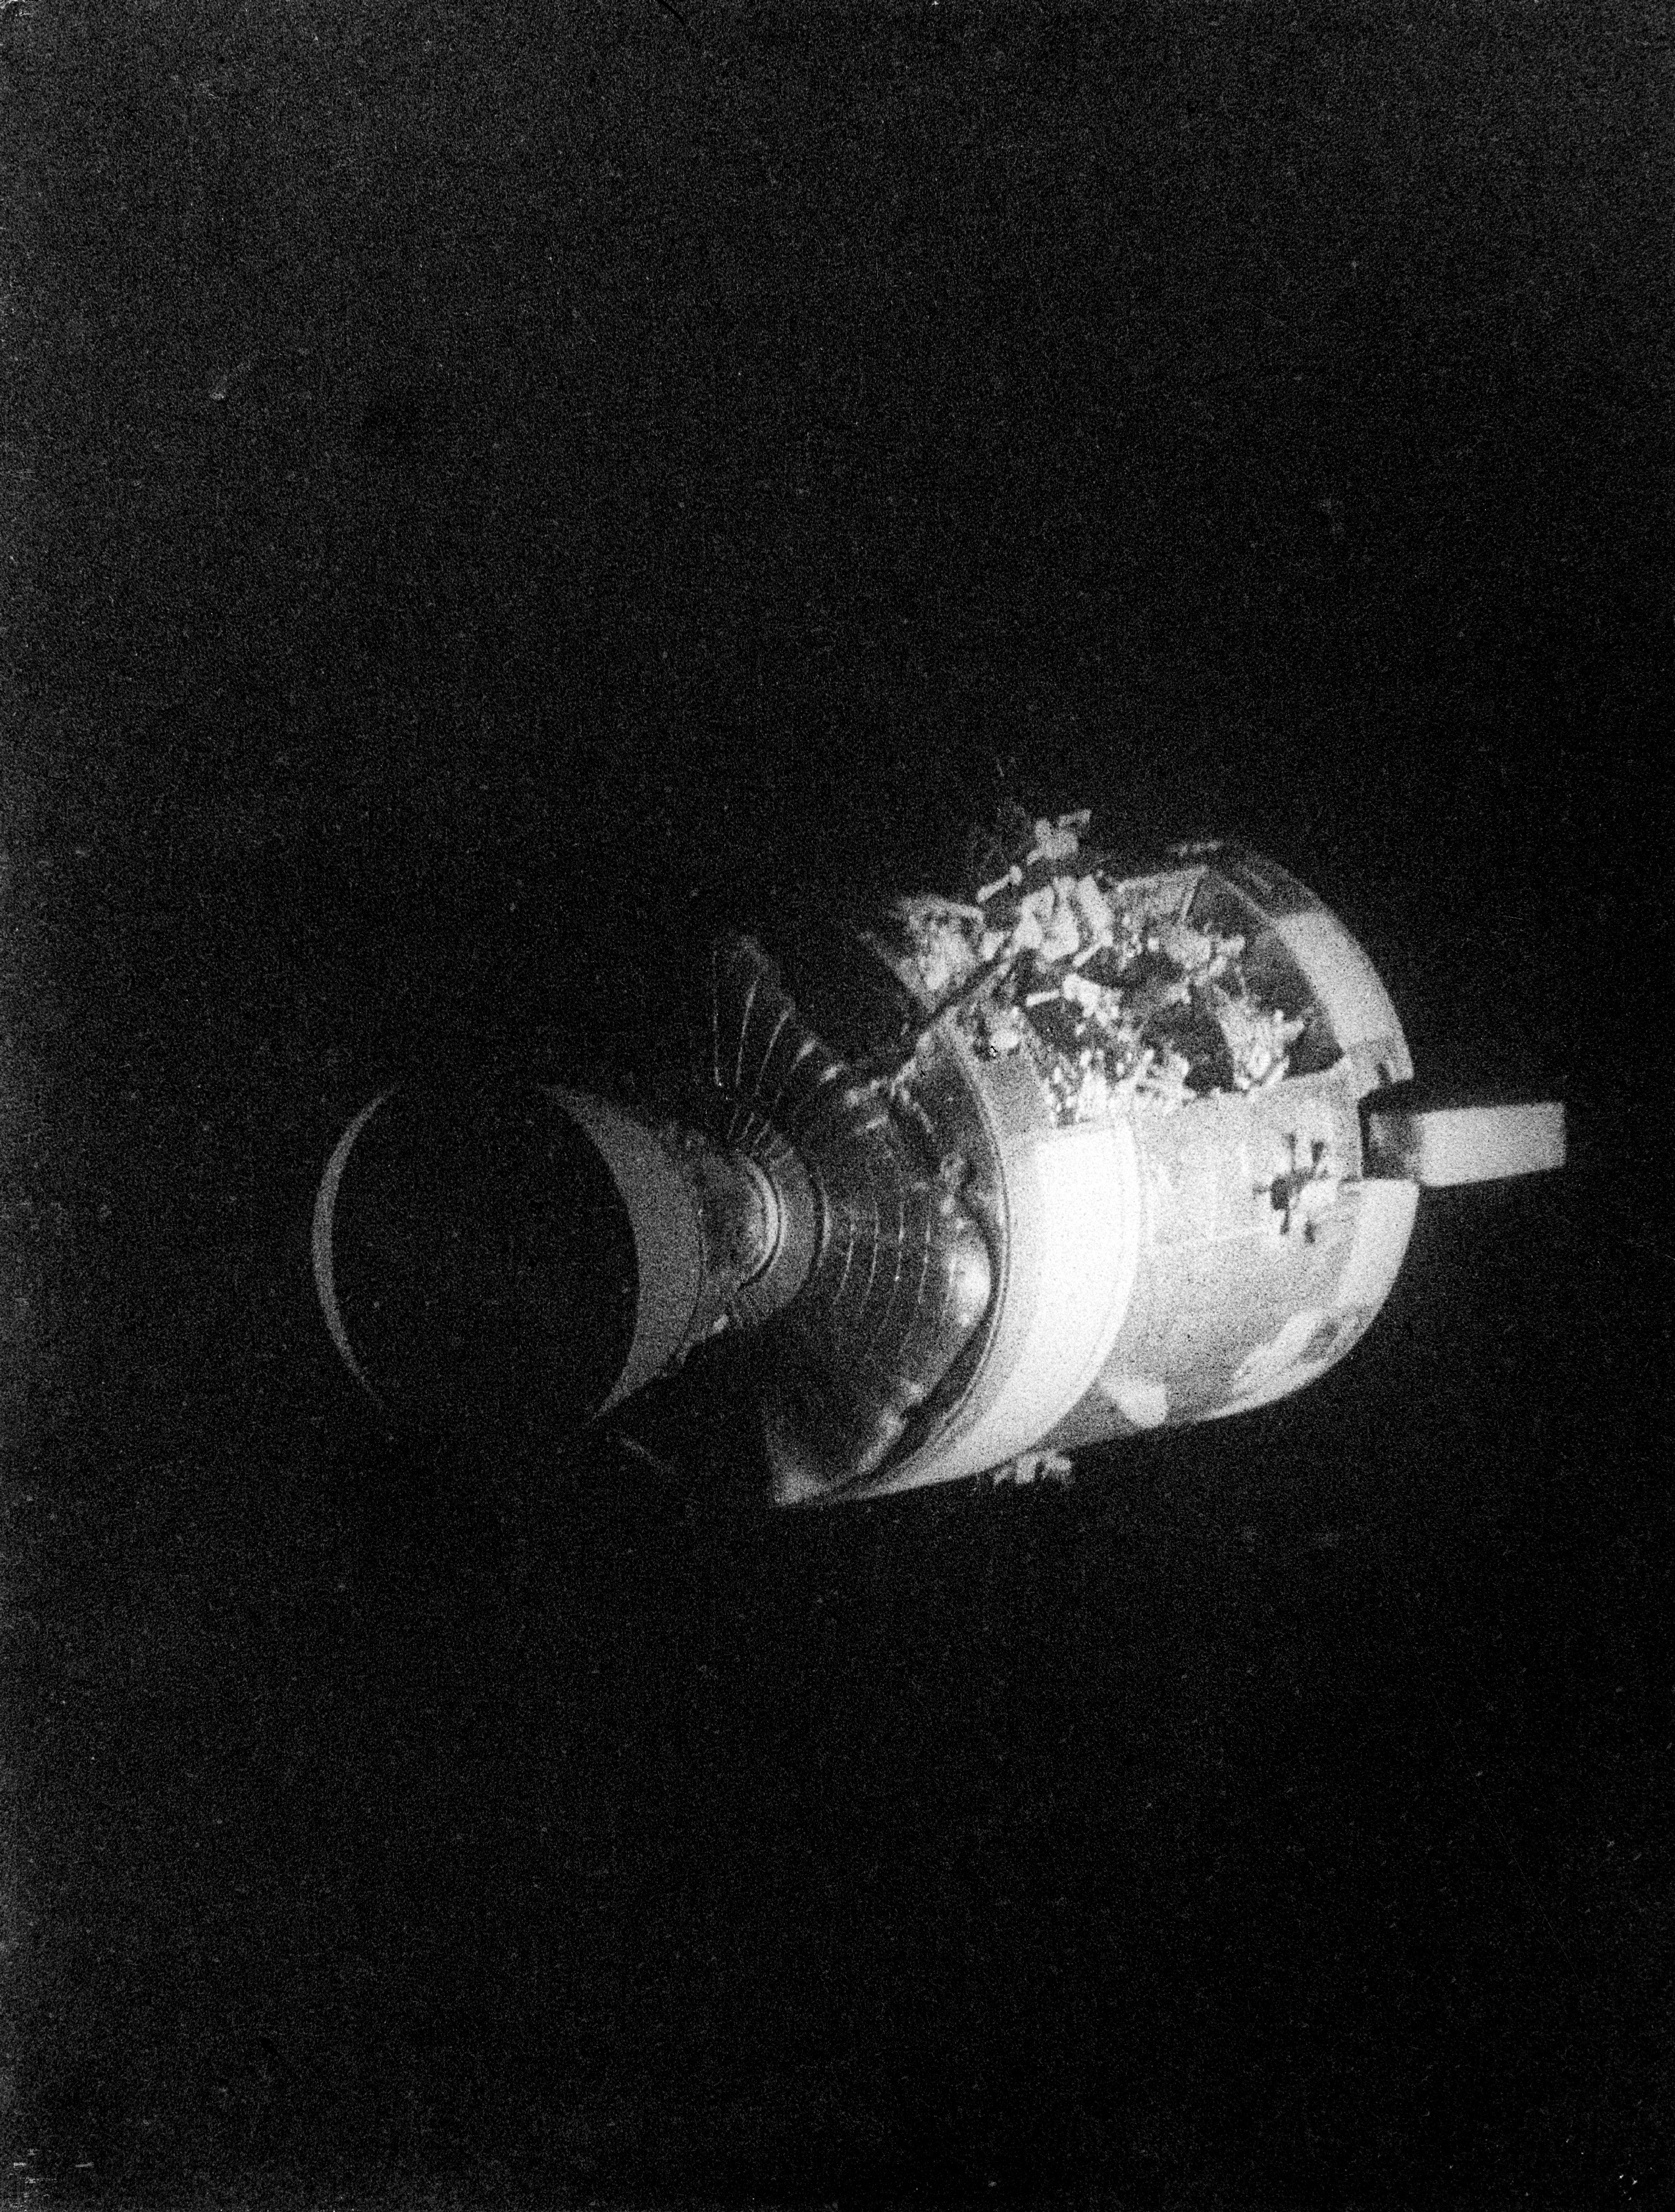 apollo space explosion - photo #5